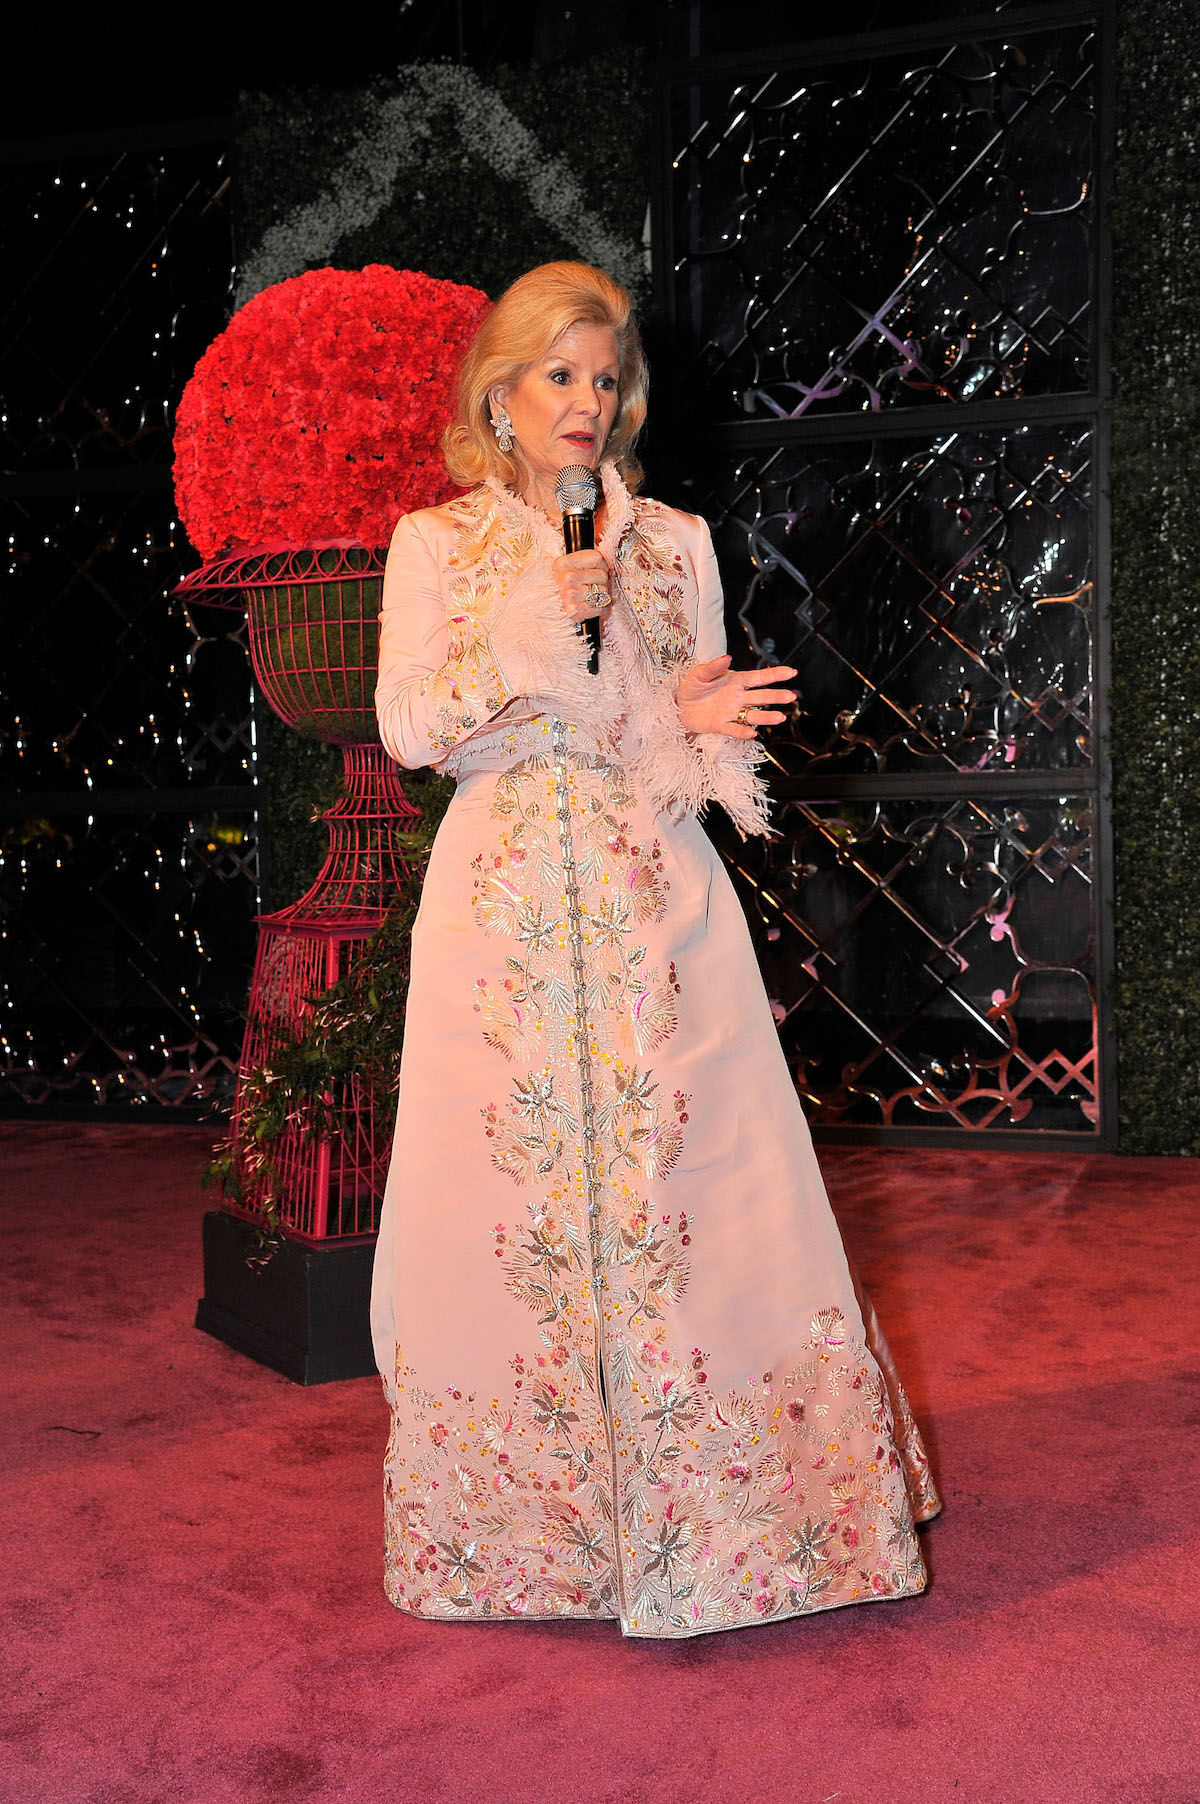 Dede Wilsey at the opening of an Oscar de la Renta retrospective at the de Young Museum. Photo by Steve Jennings/Getty Images for Fine Arts Museums of San Francisco.